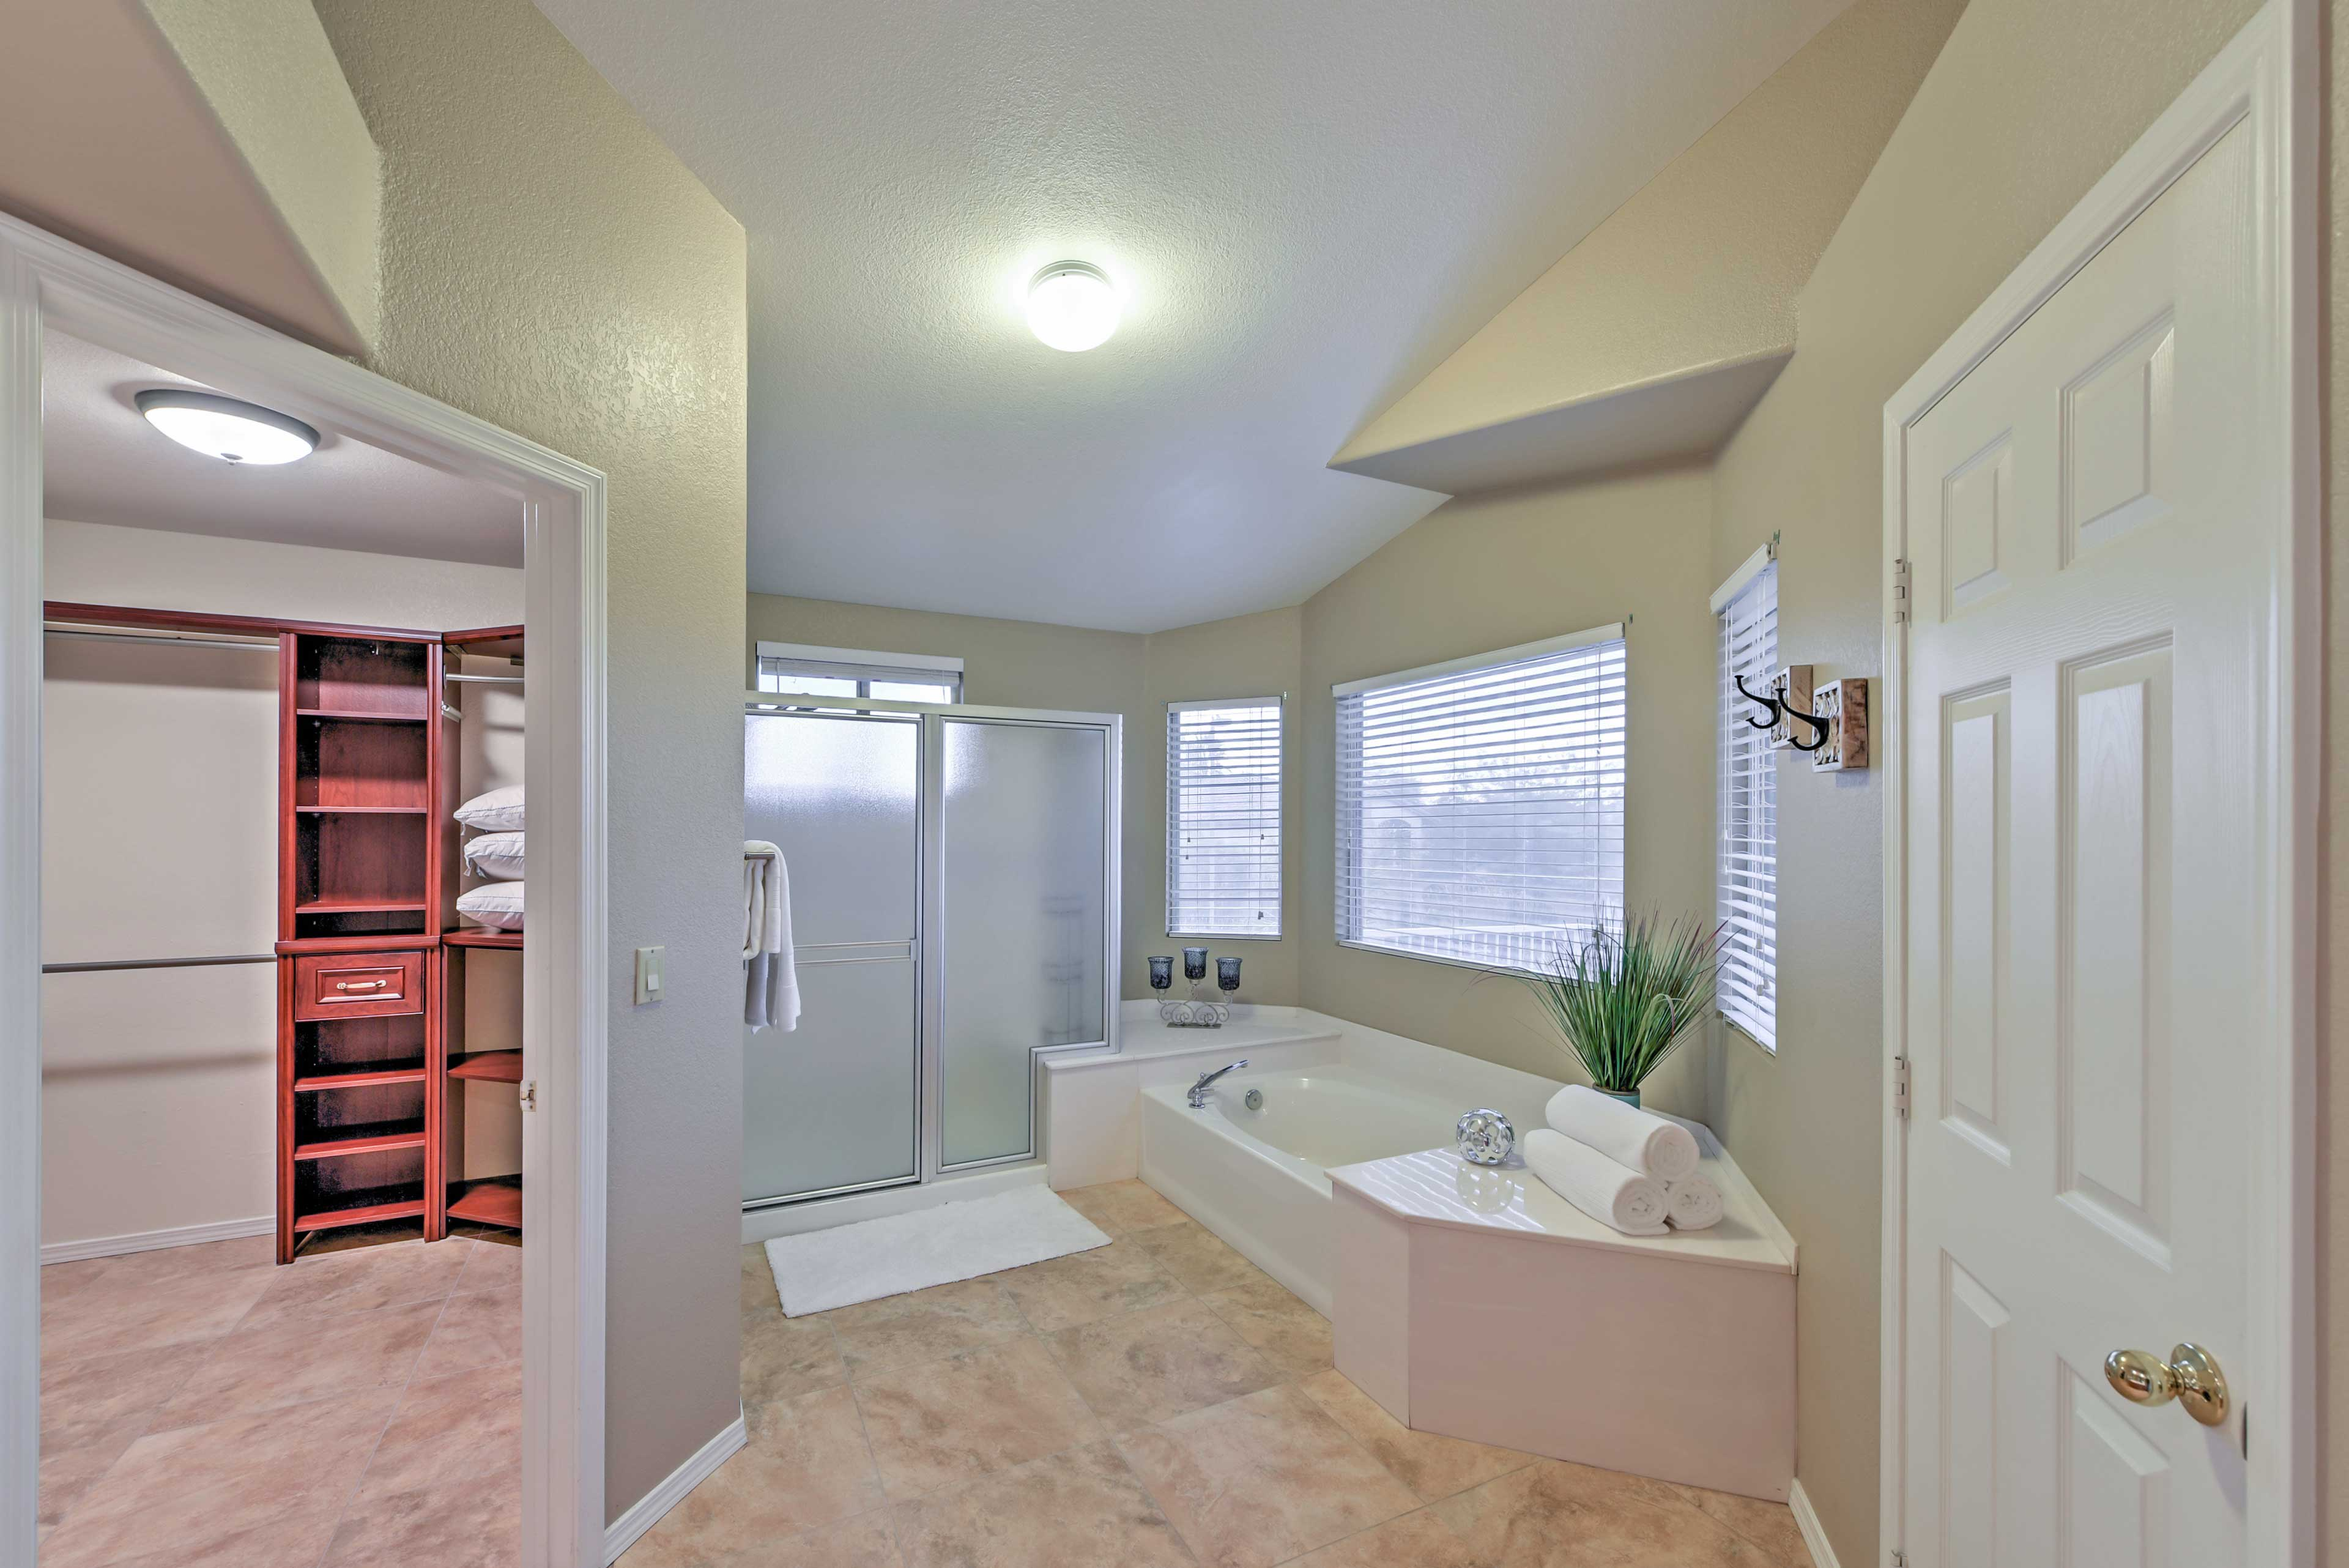 Soak in the jetted Jacuzzi tub and hang your clothes in the walk-in closet.